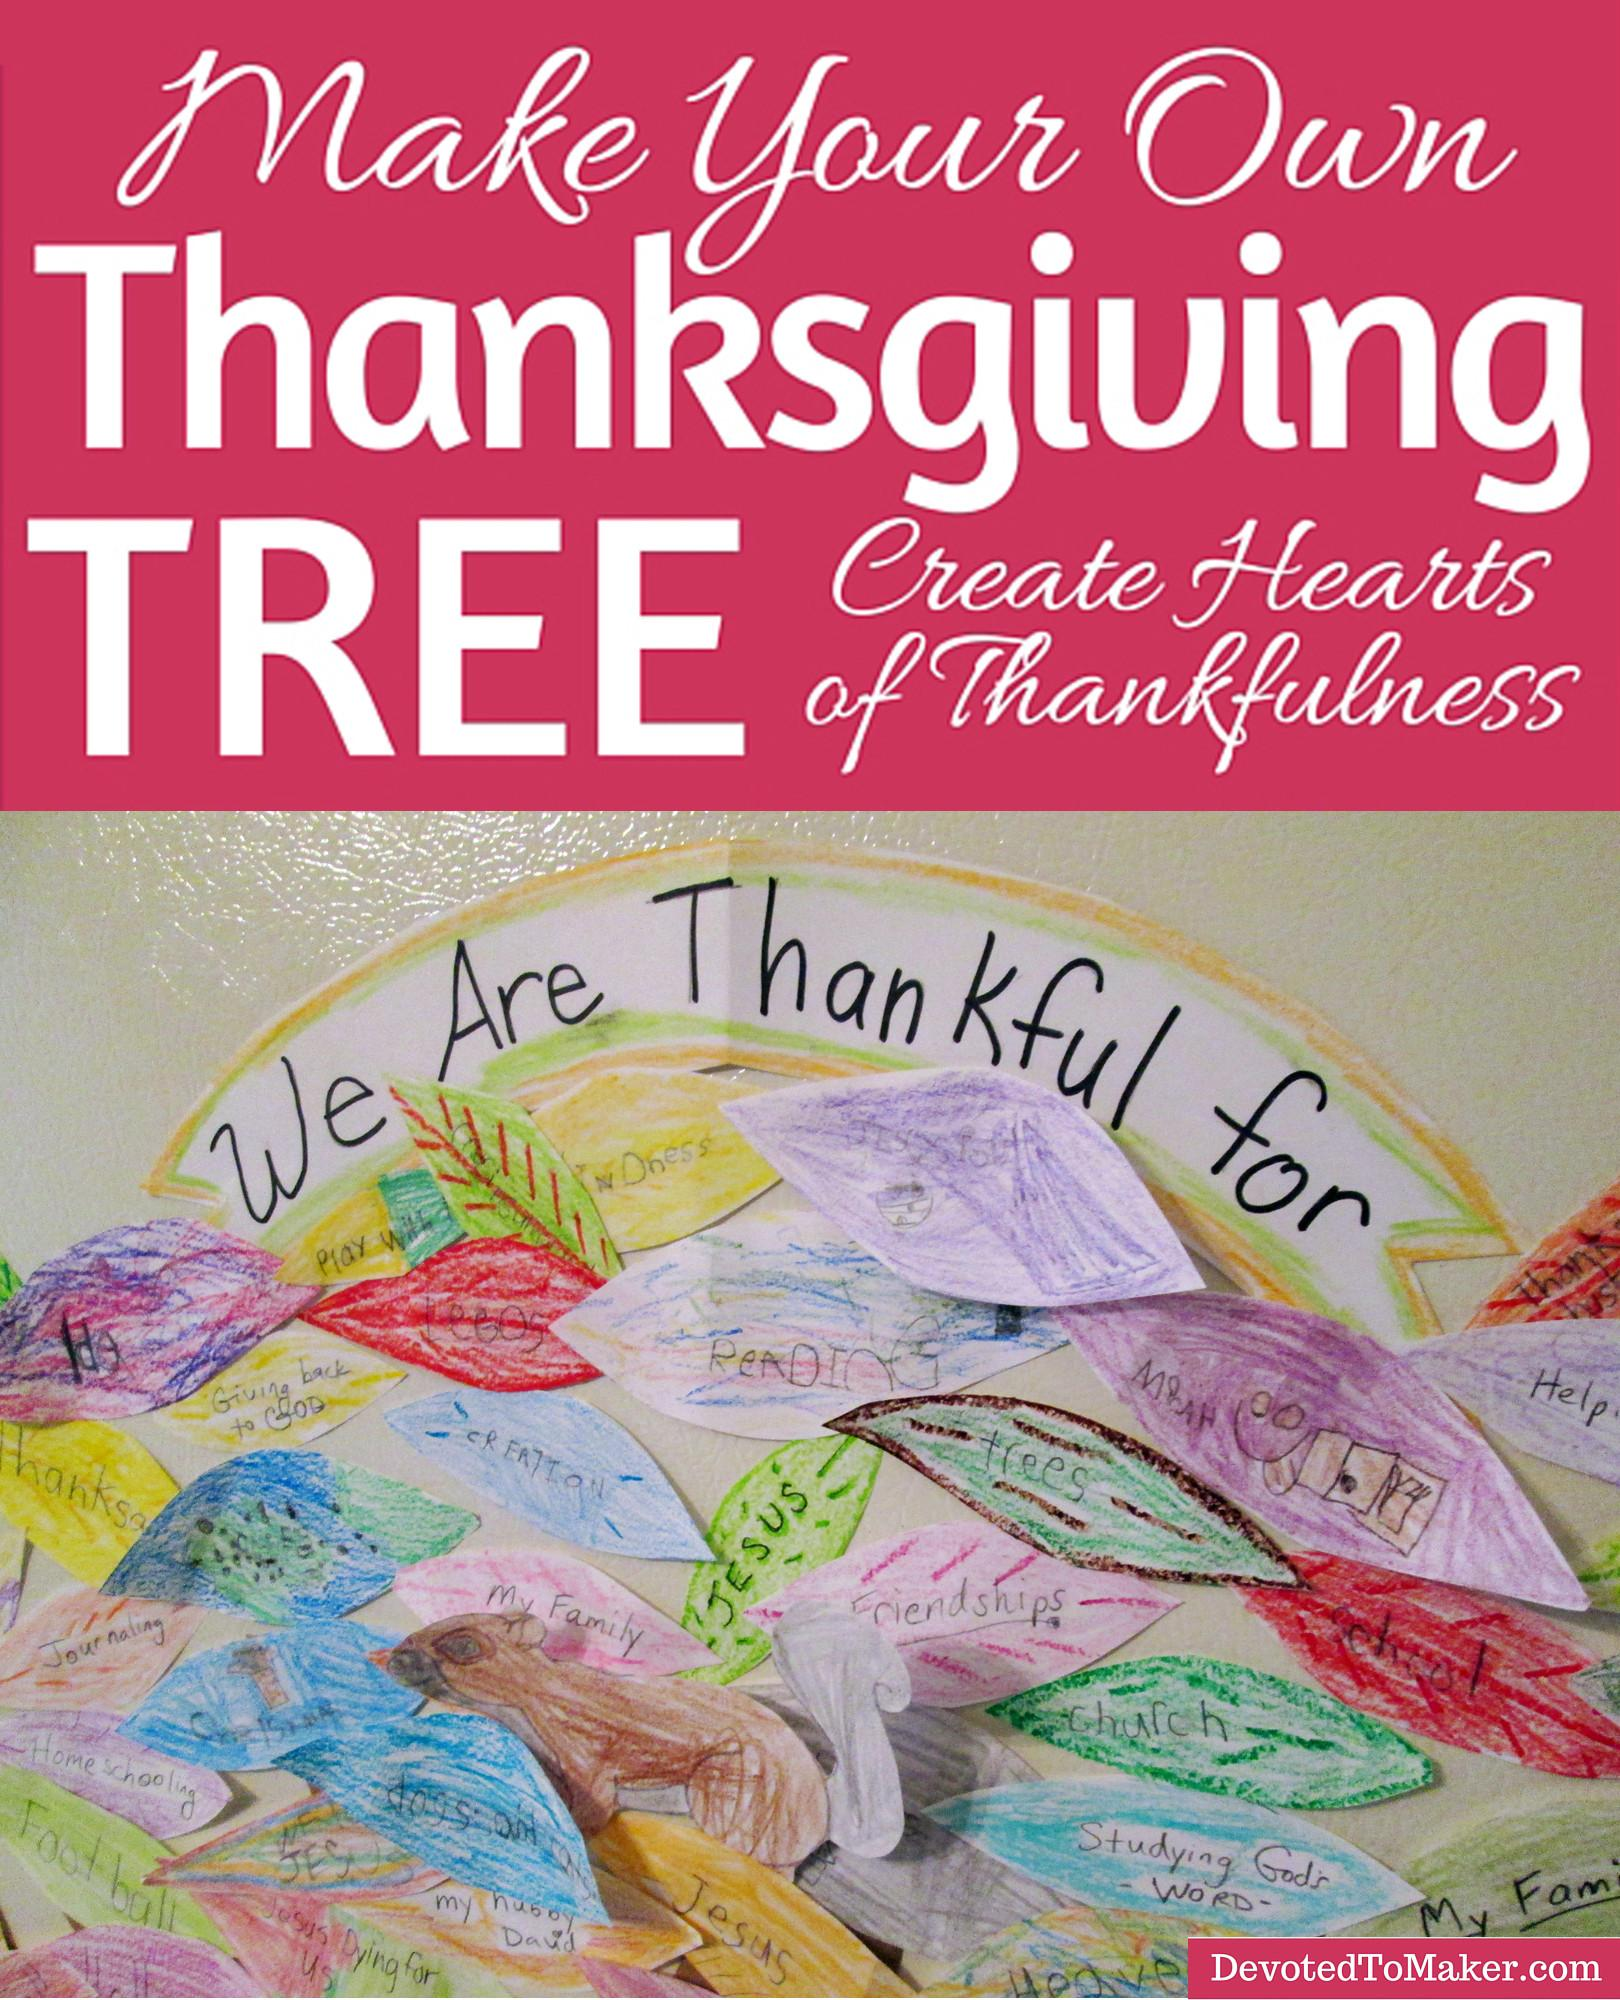 Create Hearts Thankfulness Thanksgiving Tree